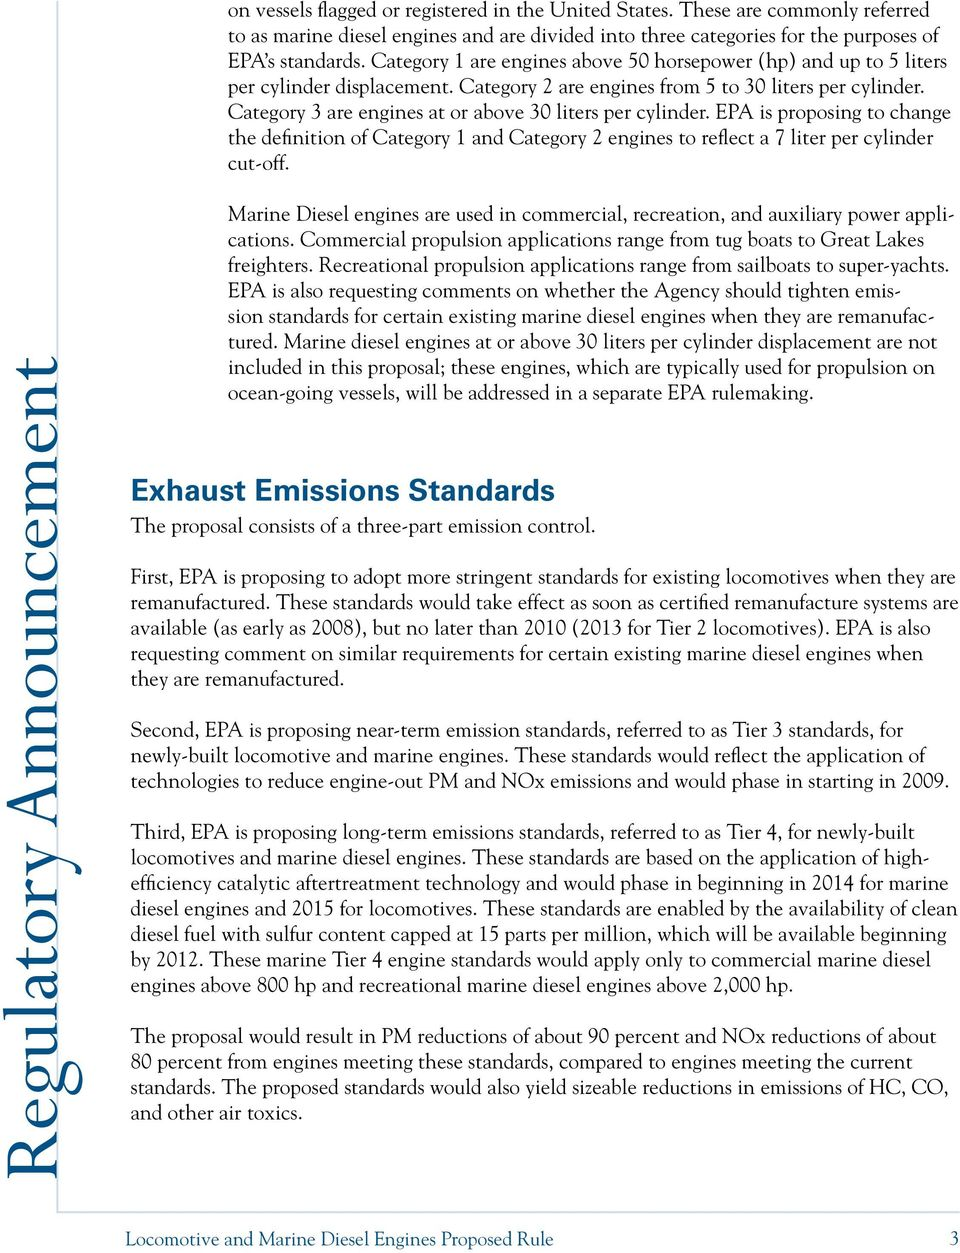 Category 3 are engines at or above 30 liters per cylinder. EPA is proposing to change the definition of Category 1 and Category 2 engines to reflect a 7 liter per cylinder cut-off.